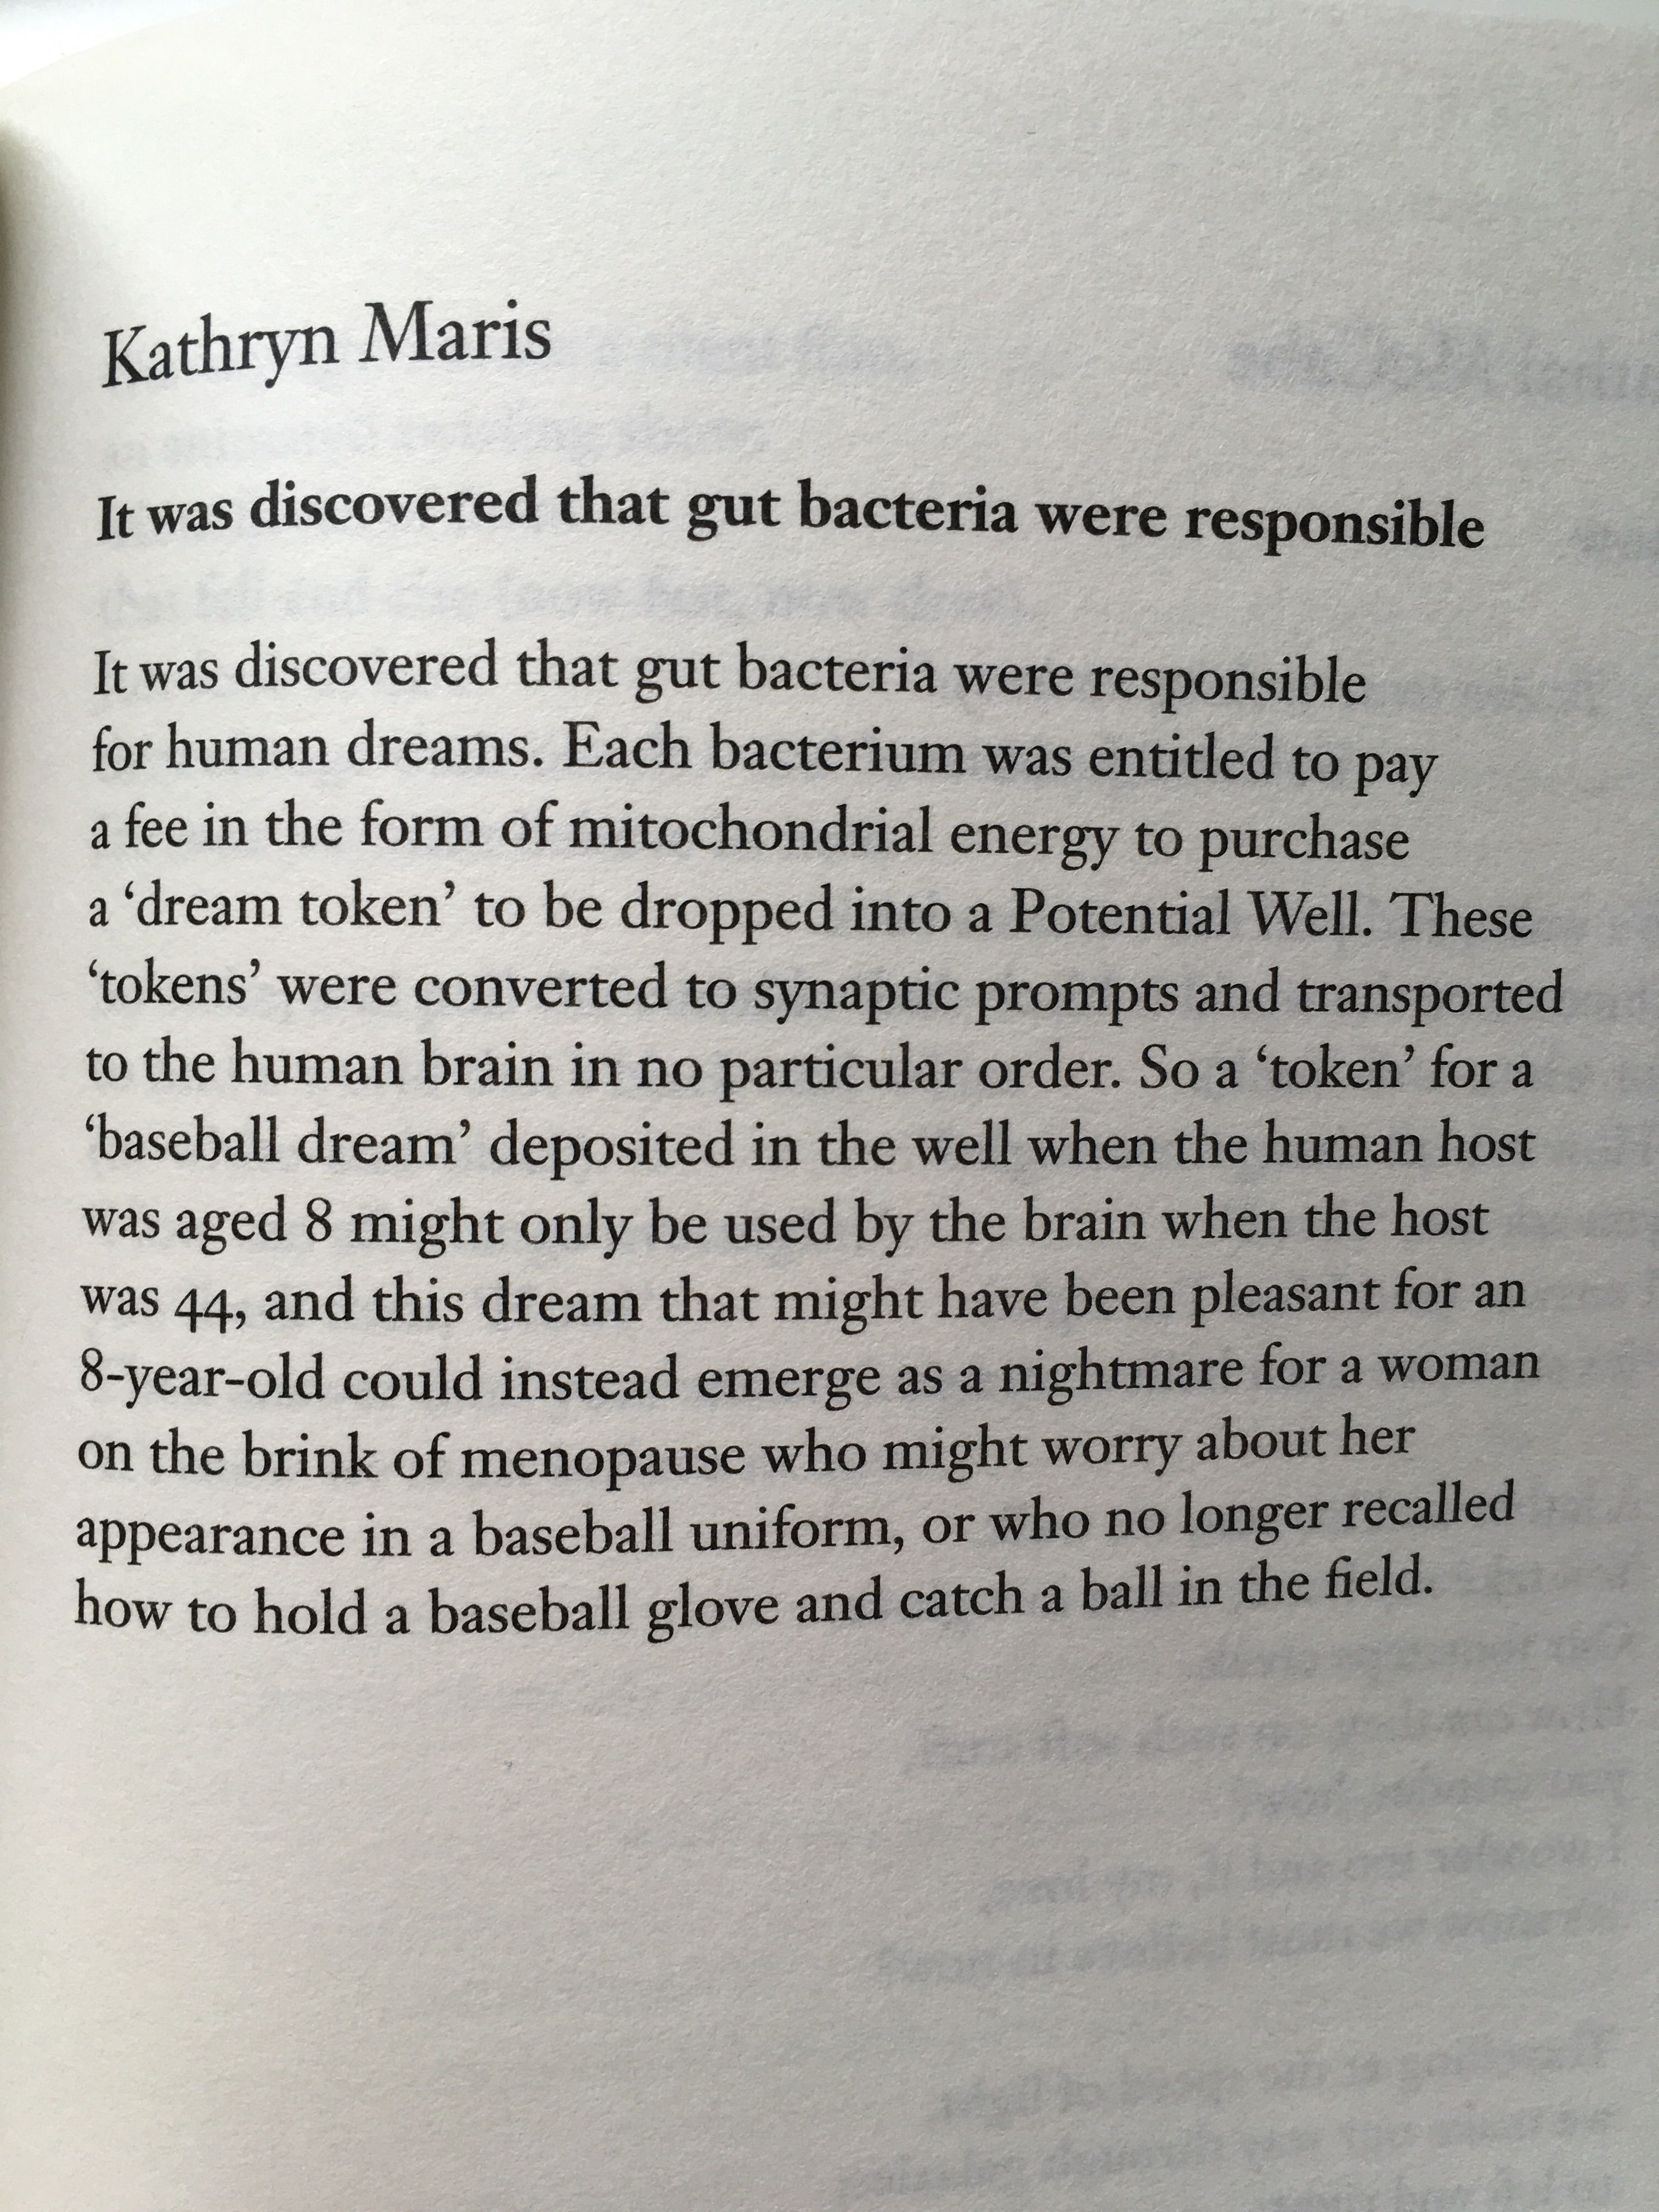 Poem It Was Discovered That Gut Bacteria Were Responsible By Kathryn Maris From The Forward Book Of Poetry 2017 Be Bold Quotes Words Poems